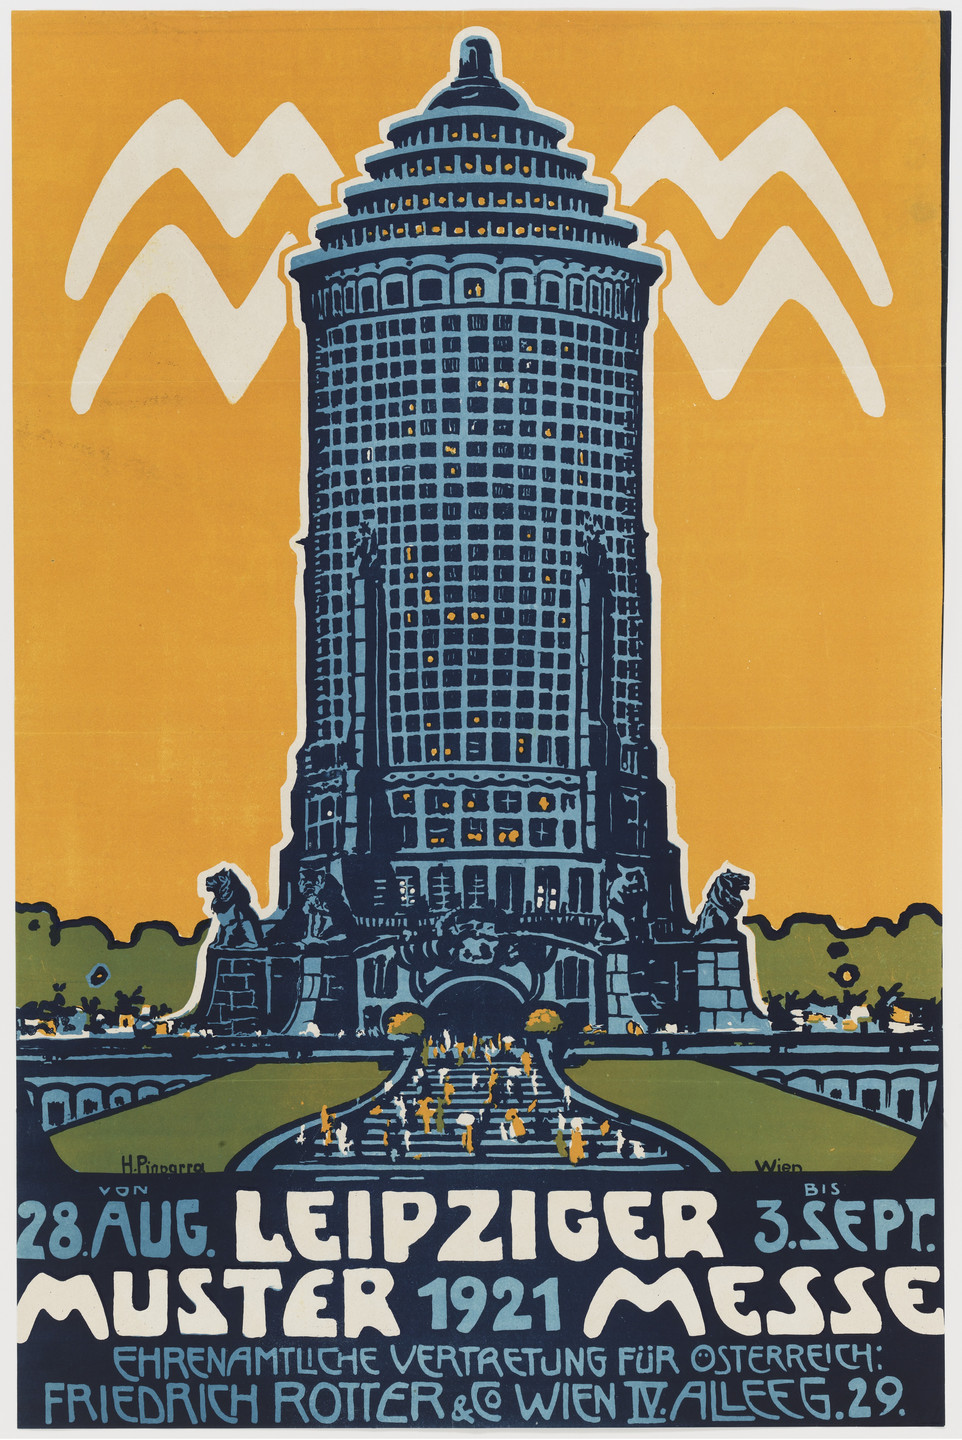 H. Pinparra. Leipziger Mustermesse (Poster for a Leipzig trade fair). 1921